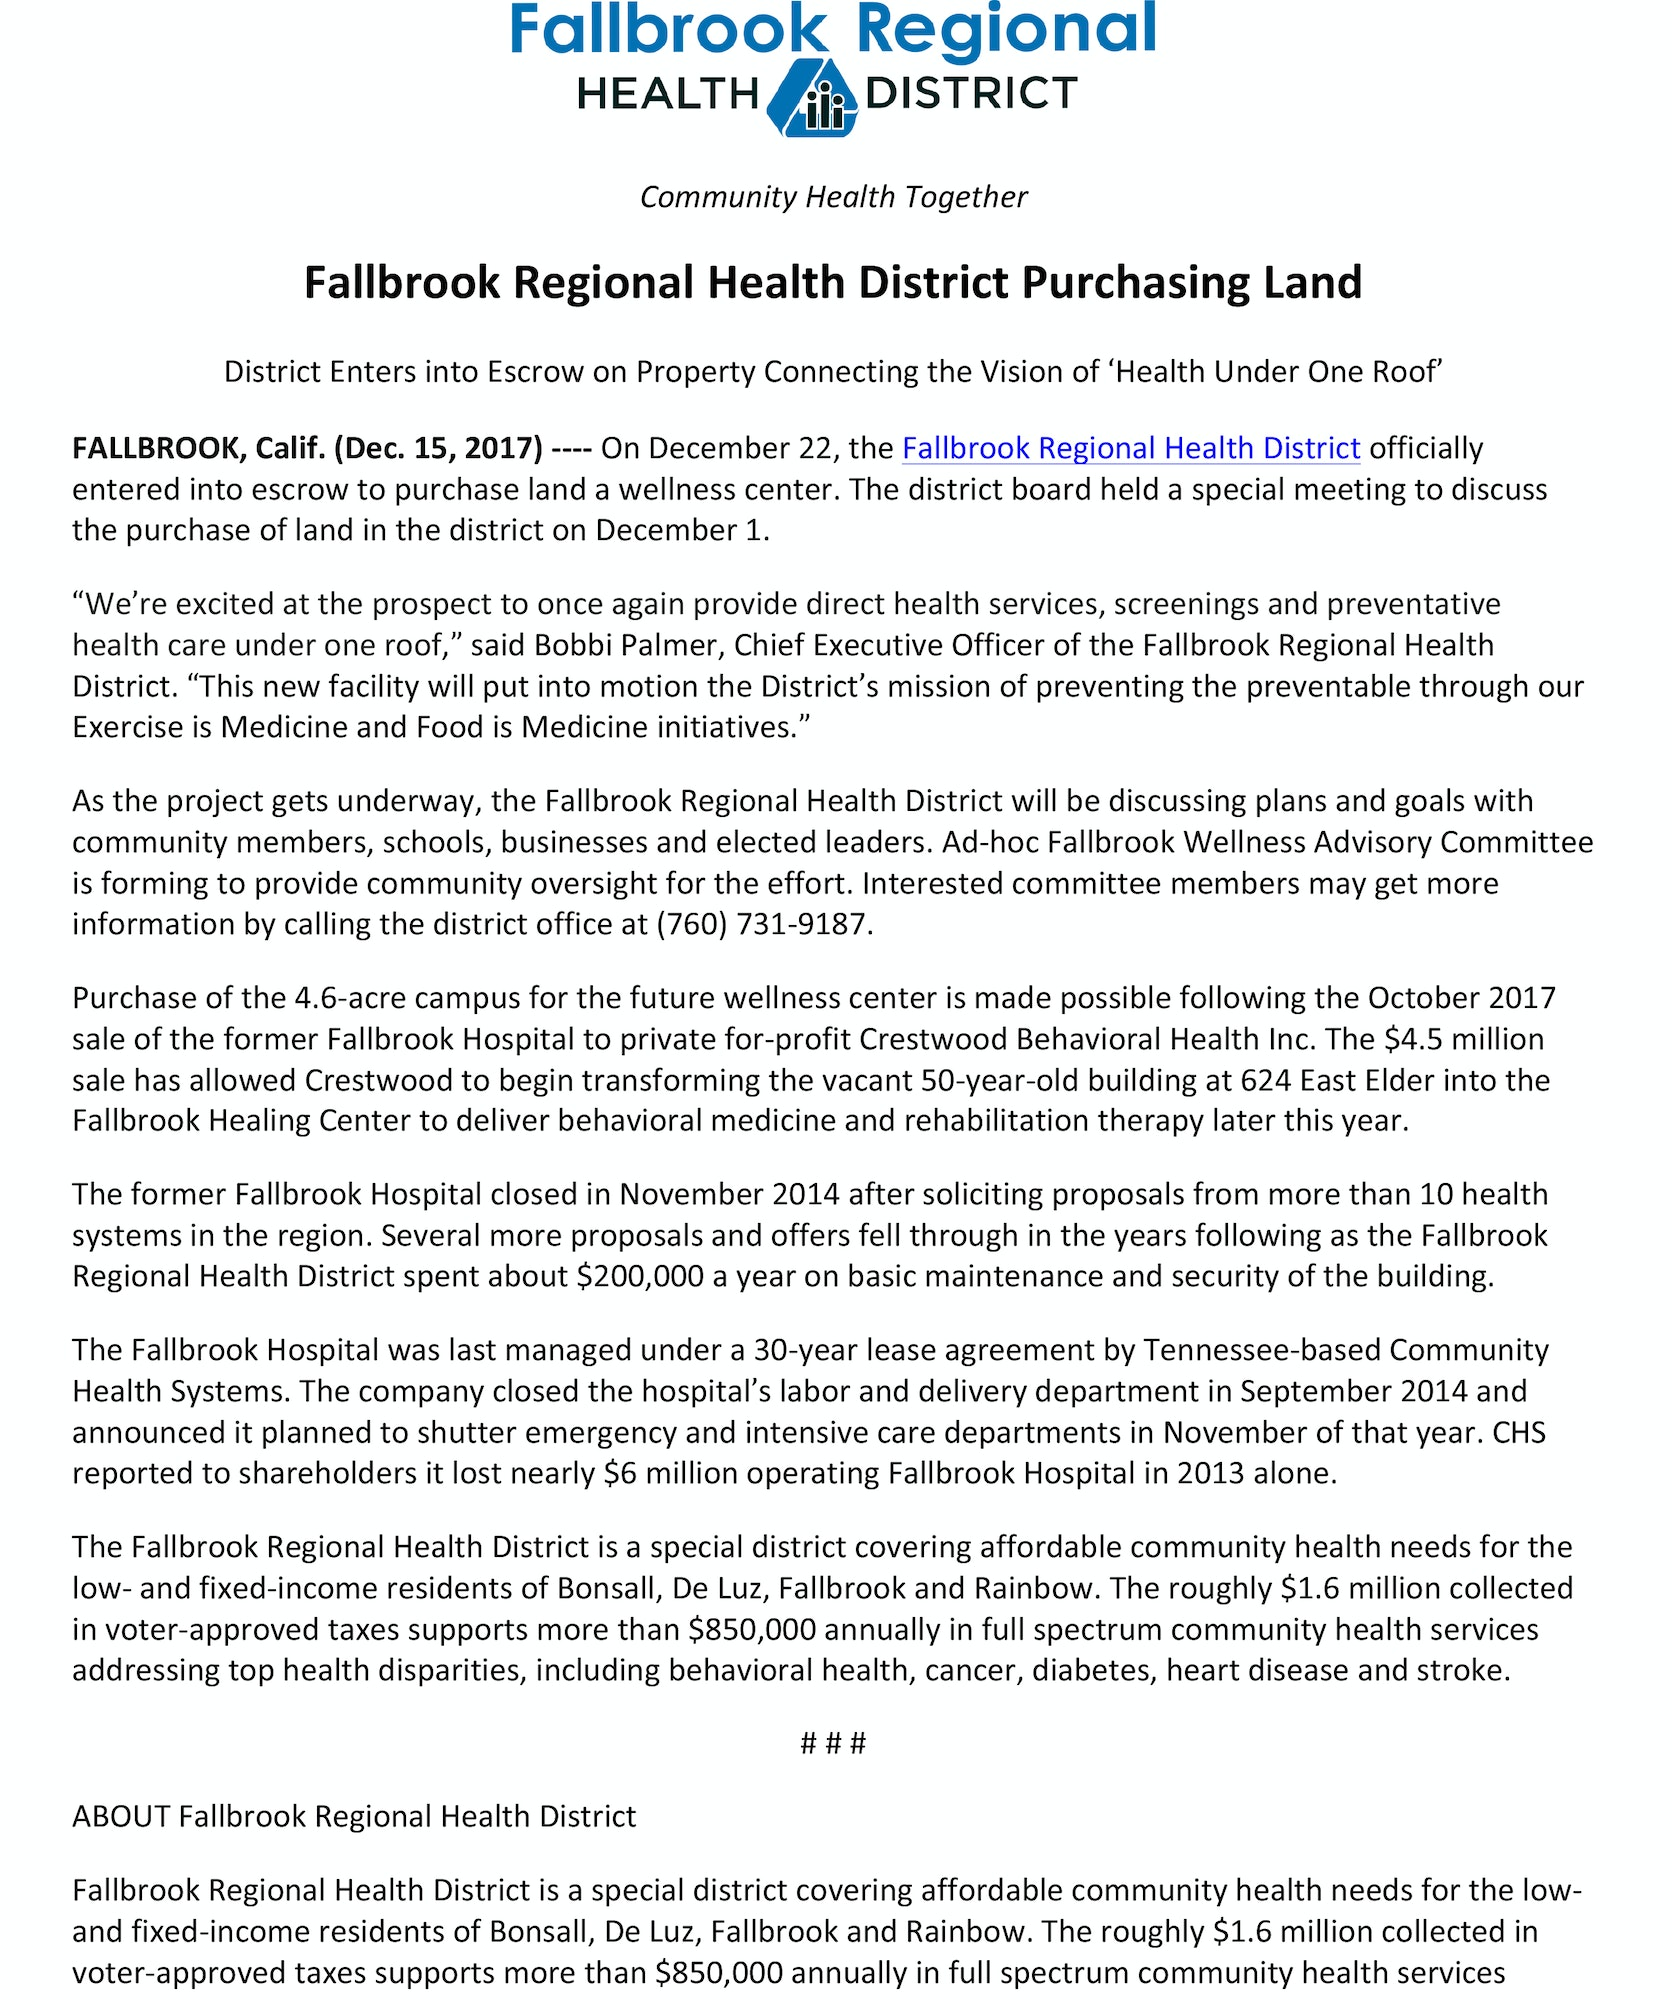 "Fallbrook Regional Health District Purchasing Land District Enters into Escrow on Property Connecting the Vision of 'Health Under One Roof' FALLBROOK, Calif. (Dec. 15, 2017) -­‐-­‐-­‐-­‐ On December 22, the Fallbrook Regional Health District officially entered into escrow to purchase land a wellness center. The district board held a special meeting to discuss the purchase of land in the district on December 1. ""We're excited at the prospect to once again provide direct health services, screenings and preventative health care under one roof,"" said Bobbi Palmer, Chief Executive Officer of the Fallbrook Regional Health District. ""This new facility will put into motion the District's mission of preventing the preventable through our Exercise is Medicine and Food is Medicine initiatives."" As the project gets underway, the Fallbrook Regional Health District will be discussing plans and goals with community members, schools, businesses and elected leaders. Ad-­‐hoc Fallbrook Wellness Advisory Committee is forming to provide community oversight for the effort. Interested committee members may get more information by calling the district office at (760) 731-­‐9187. Purchase of the 4.6-­‐acre campus for the future wellness center is made possible following the October 2017 sale of the former Fallbrook Hospital to private for-­‐profit Crestwood Behavioral Health Inc. The $4.5 million sale has allowed Crestwood to begin transforming the vacant 50-­‐year-­‐old building at 624 East Elder into the Fallbrook Healing Center to deliver behavioral medicine and rehabilitation therapy later this year. The former Fallbrook Hospital closed in November 2014 after soliciting proposals from more than 10 health systems in the region. Several more proposals and offers fell through in the years following as the Fallbrook Regional Health District spent about $200,000 a year on basic maintenance and security of the building. The Fallbrook Hospital was last managed under a 30-­‐year lease agreement by Tennessee-­‐based Community Health Systems. The company closed the hospital's labor and delivery department in September 2014 and announced it planned to shutter emergency and intensive care departments in November of that year. CHS reported to shareholders it lost nearly $6 million operating Fallbrook Hospital in 2013 alone. The Fallbrook Regional Health District is a special district covering affordable community health needs for the low-­‐ and fixed-­‐income residents of Bonsall, De Luz, Fallbrook and Rainbow. The roughly $1.6 million collected in voter-­‐approved taxes supports more than $850,000 annually in full spectrum community health services addressing top health disparities, including behavioral health, cancer, diabetes, heart disease and stroke. # # # ABOUT Fallbrook Regional Health District Fallbrook Regional Health District is a special district covering affordable community health needs for the low-­‐ and fixed-­‐income residents of Bonsall, De Luz, Fallbrook and Rainbow. The roughly $1.6 million collected in voter-­‐approved taxes supports more than $850,000 annually in full spectrum community health services"